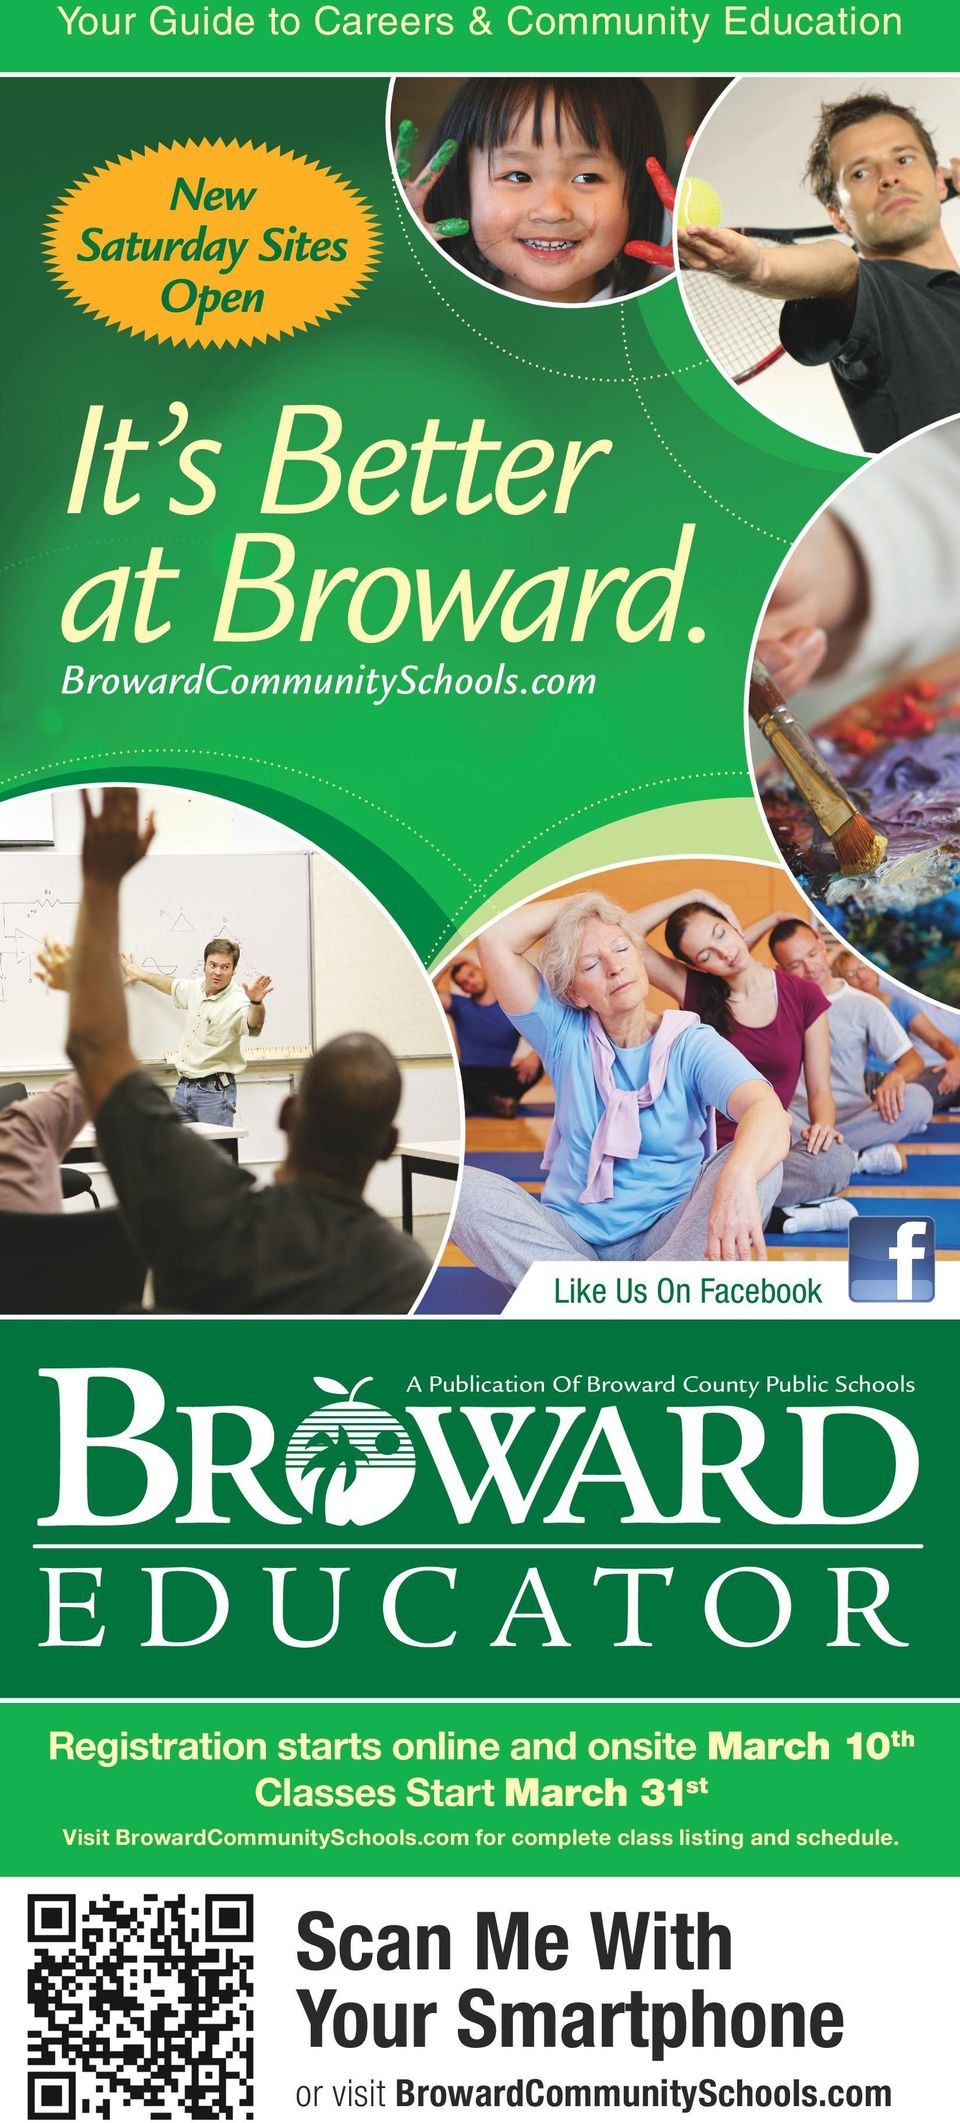 com EDUC ATOR Like Us On Facebook A Publication Of Broward County Public Schools EDUC ATOR Registration starts